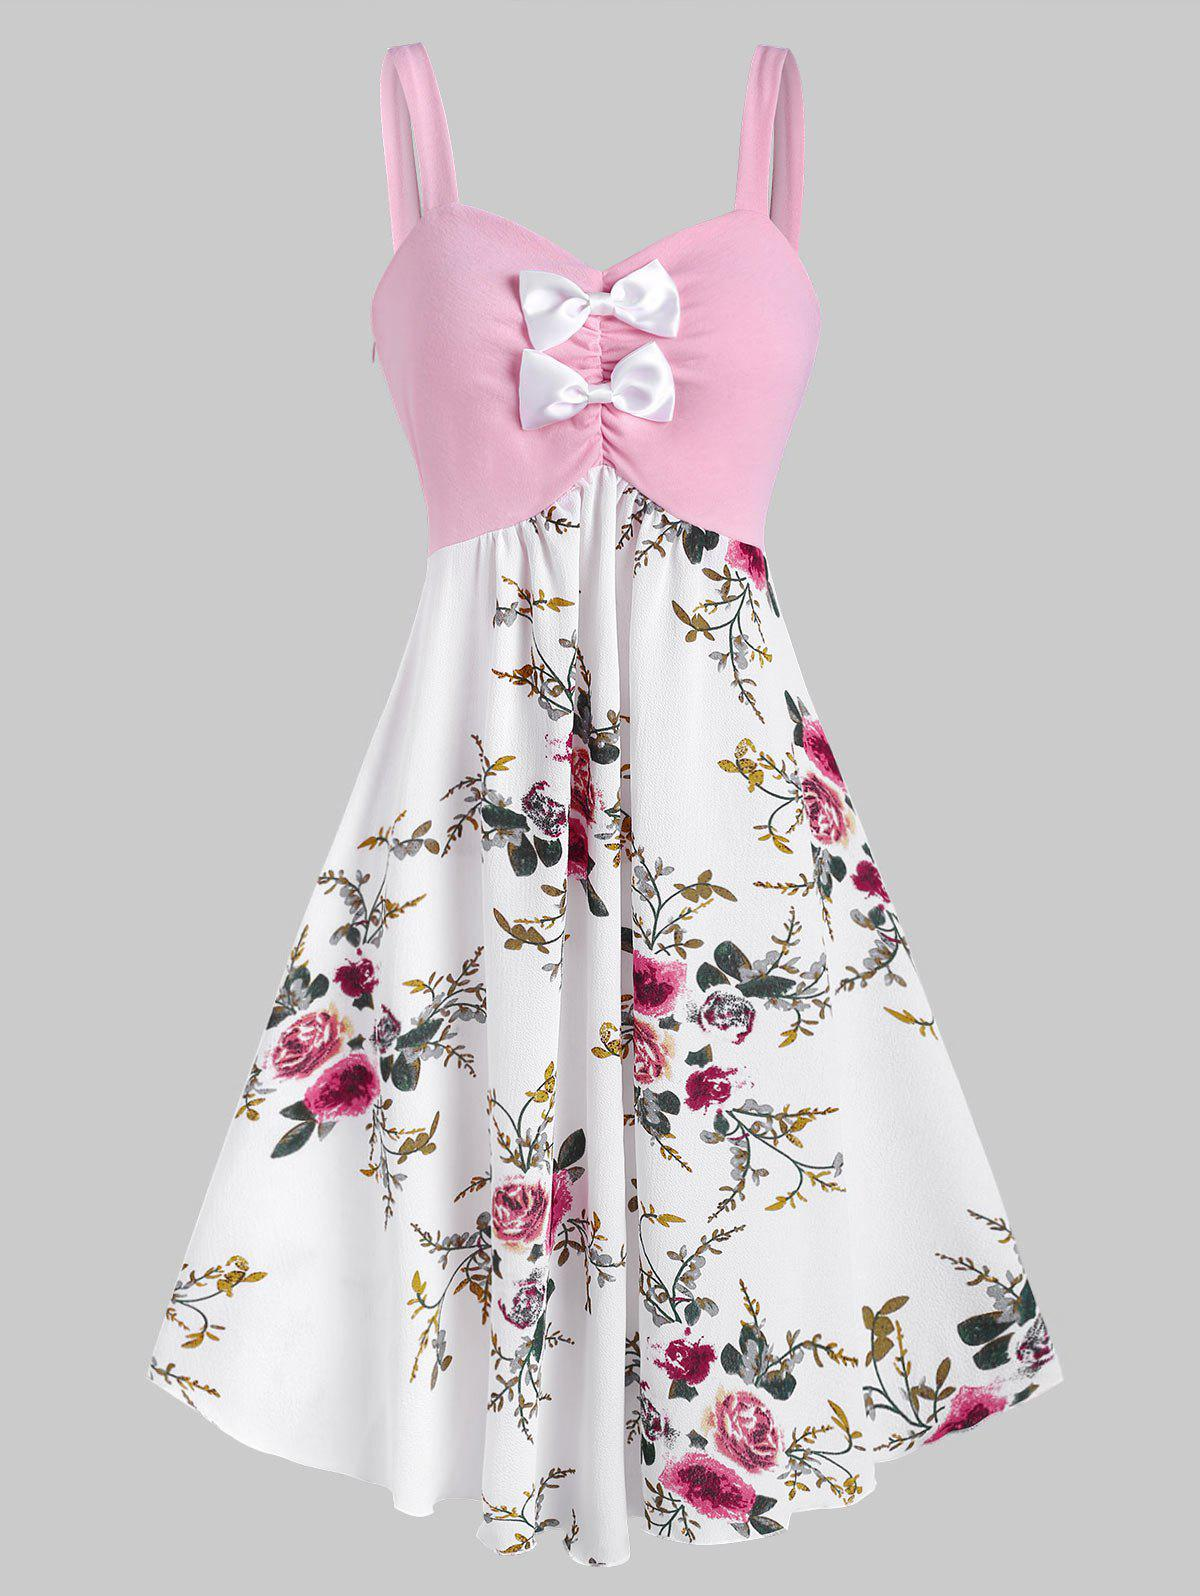 Bowknot Ruched Floral Midi Dress - LIGHT PINK XL